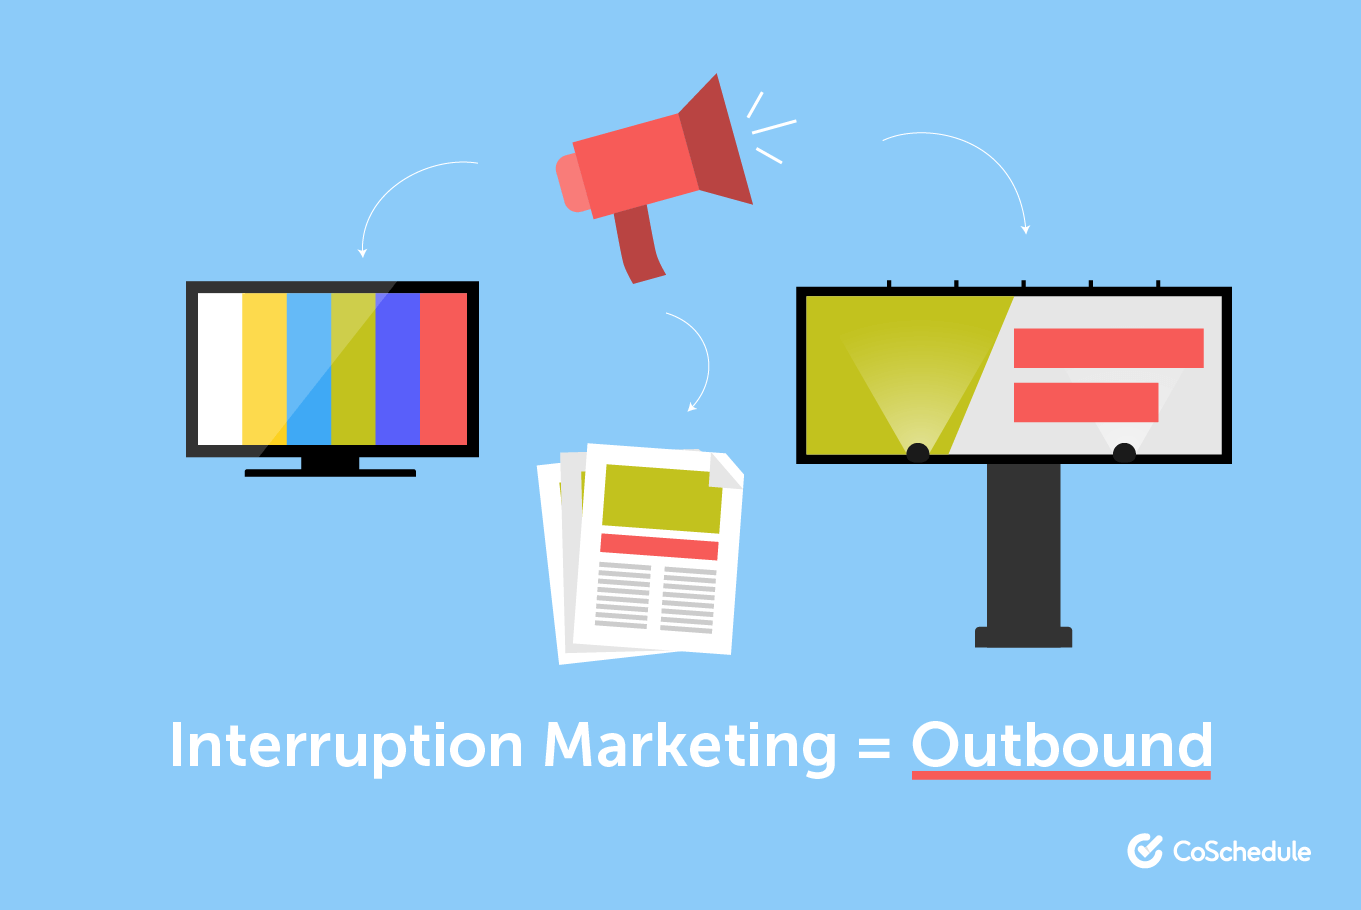 Interruption marketing is the same as outbound marketing